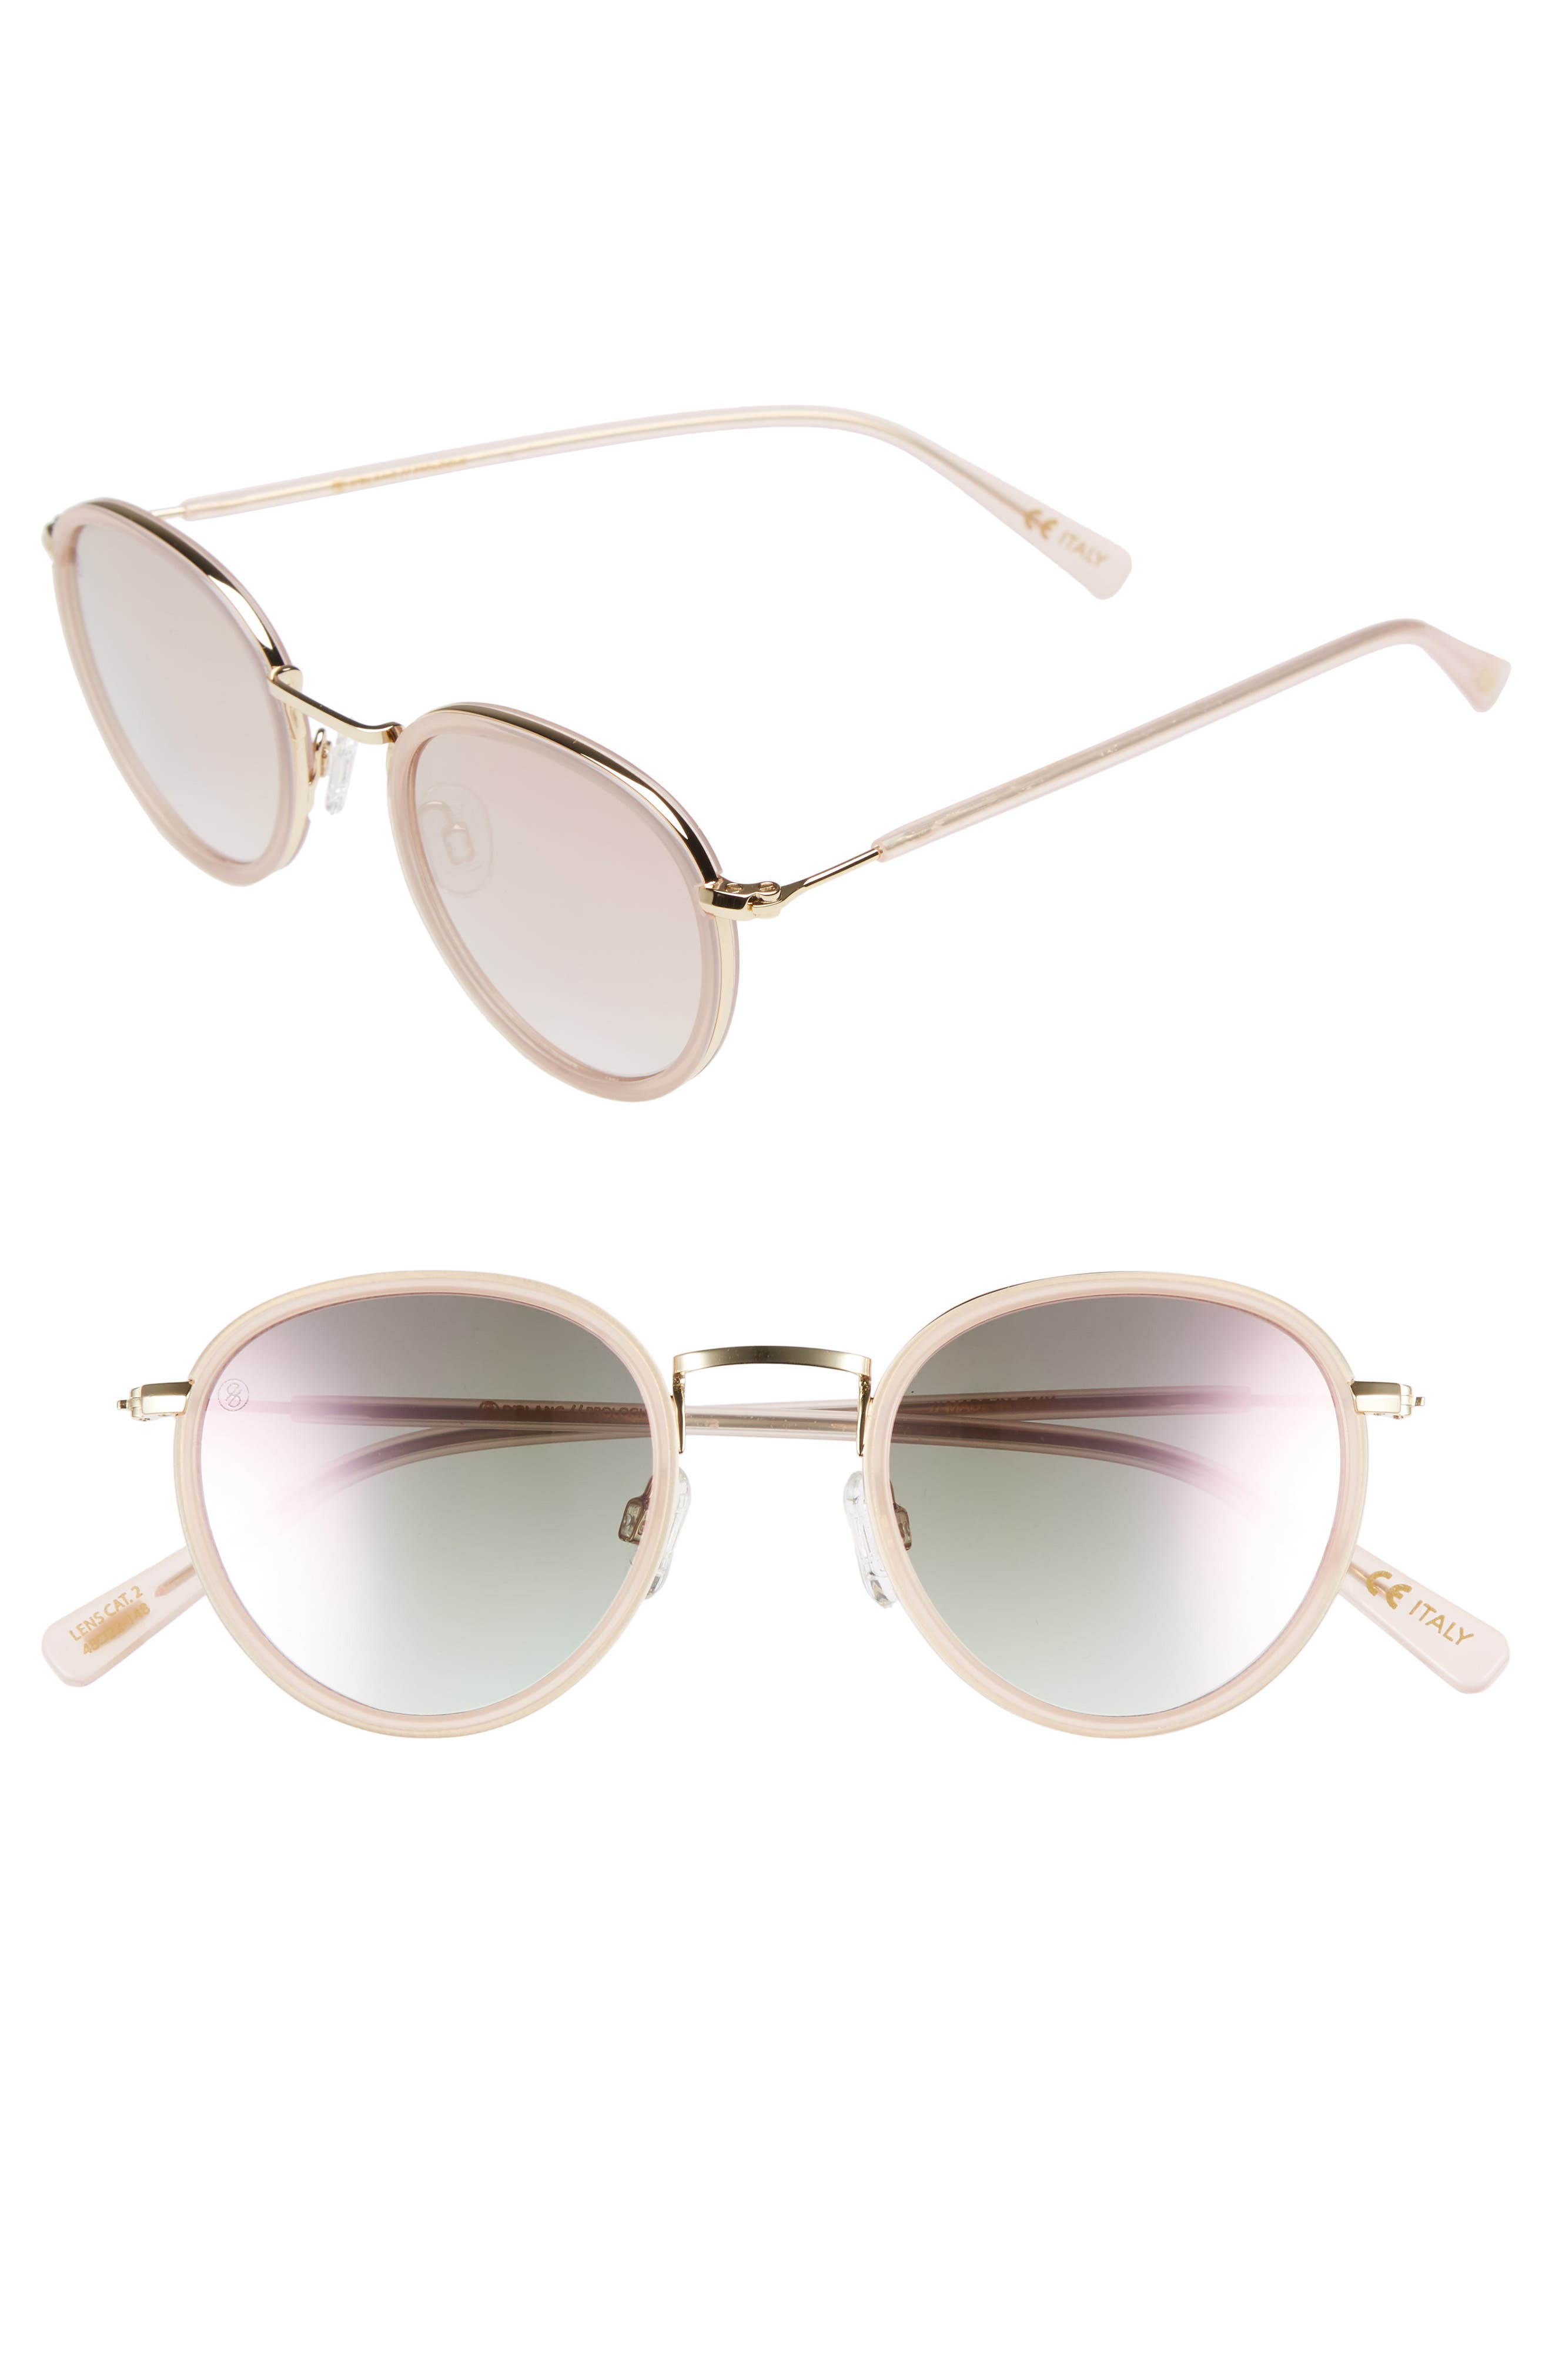 D'BLANC Prologue 48mm Round Sunglasses,                         Main,                         color, Blush/ Rose Flash